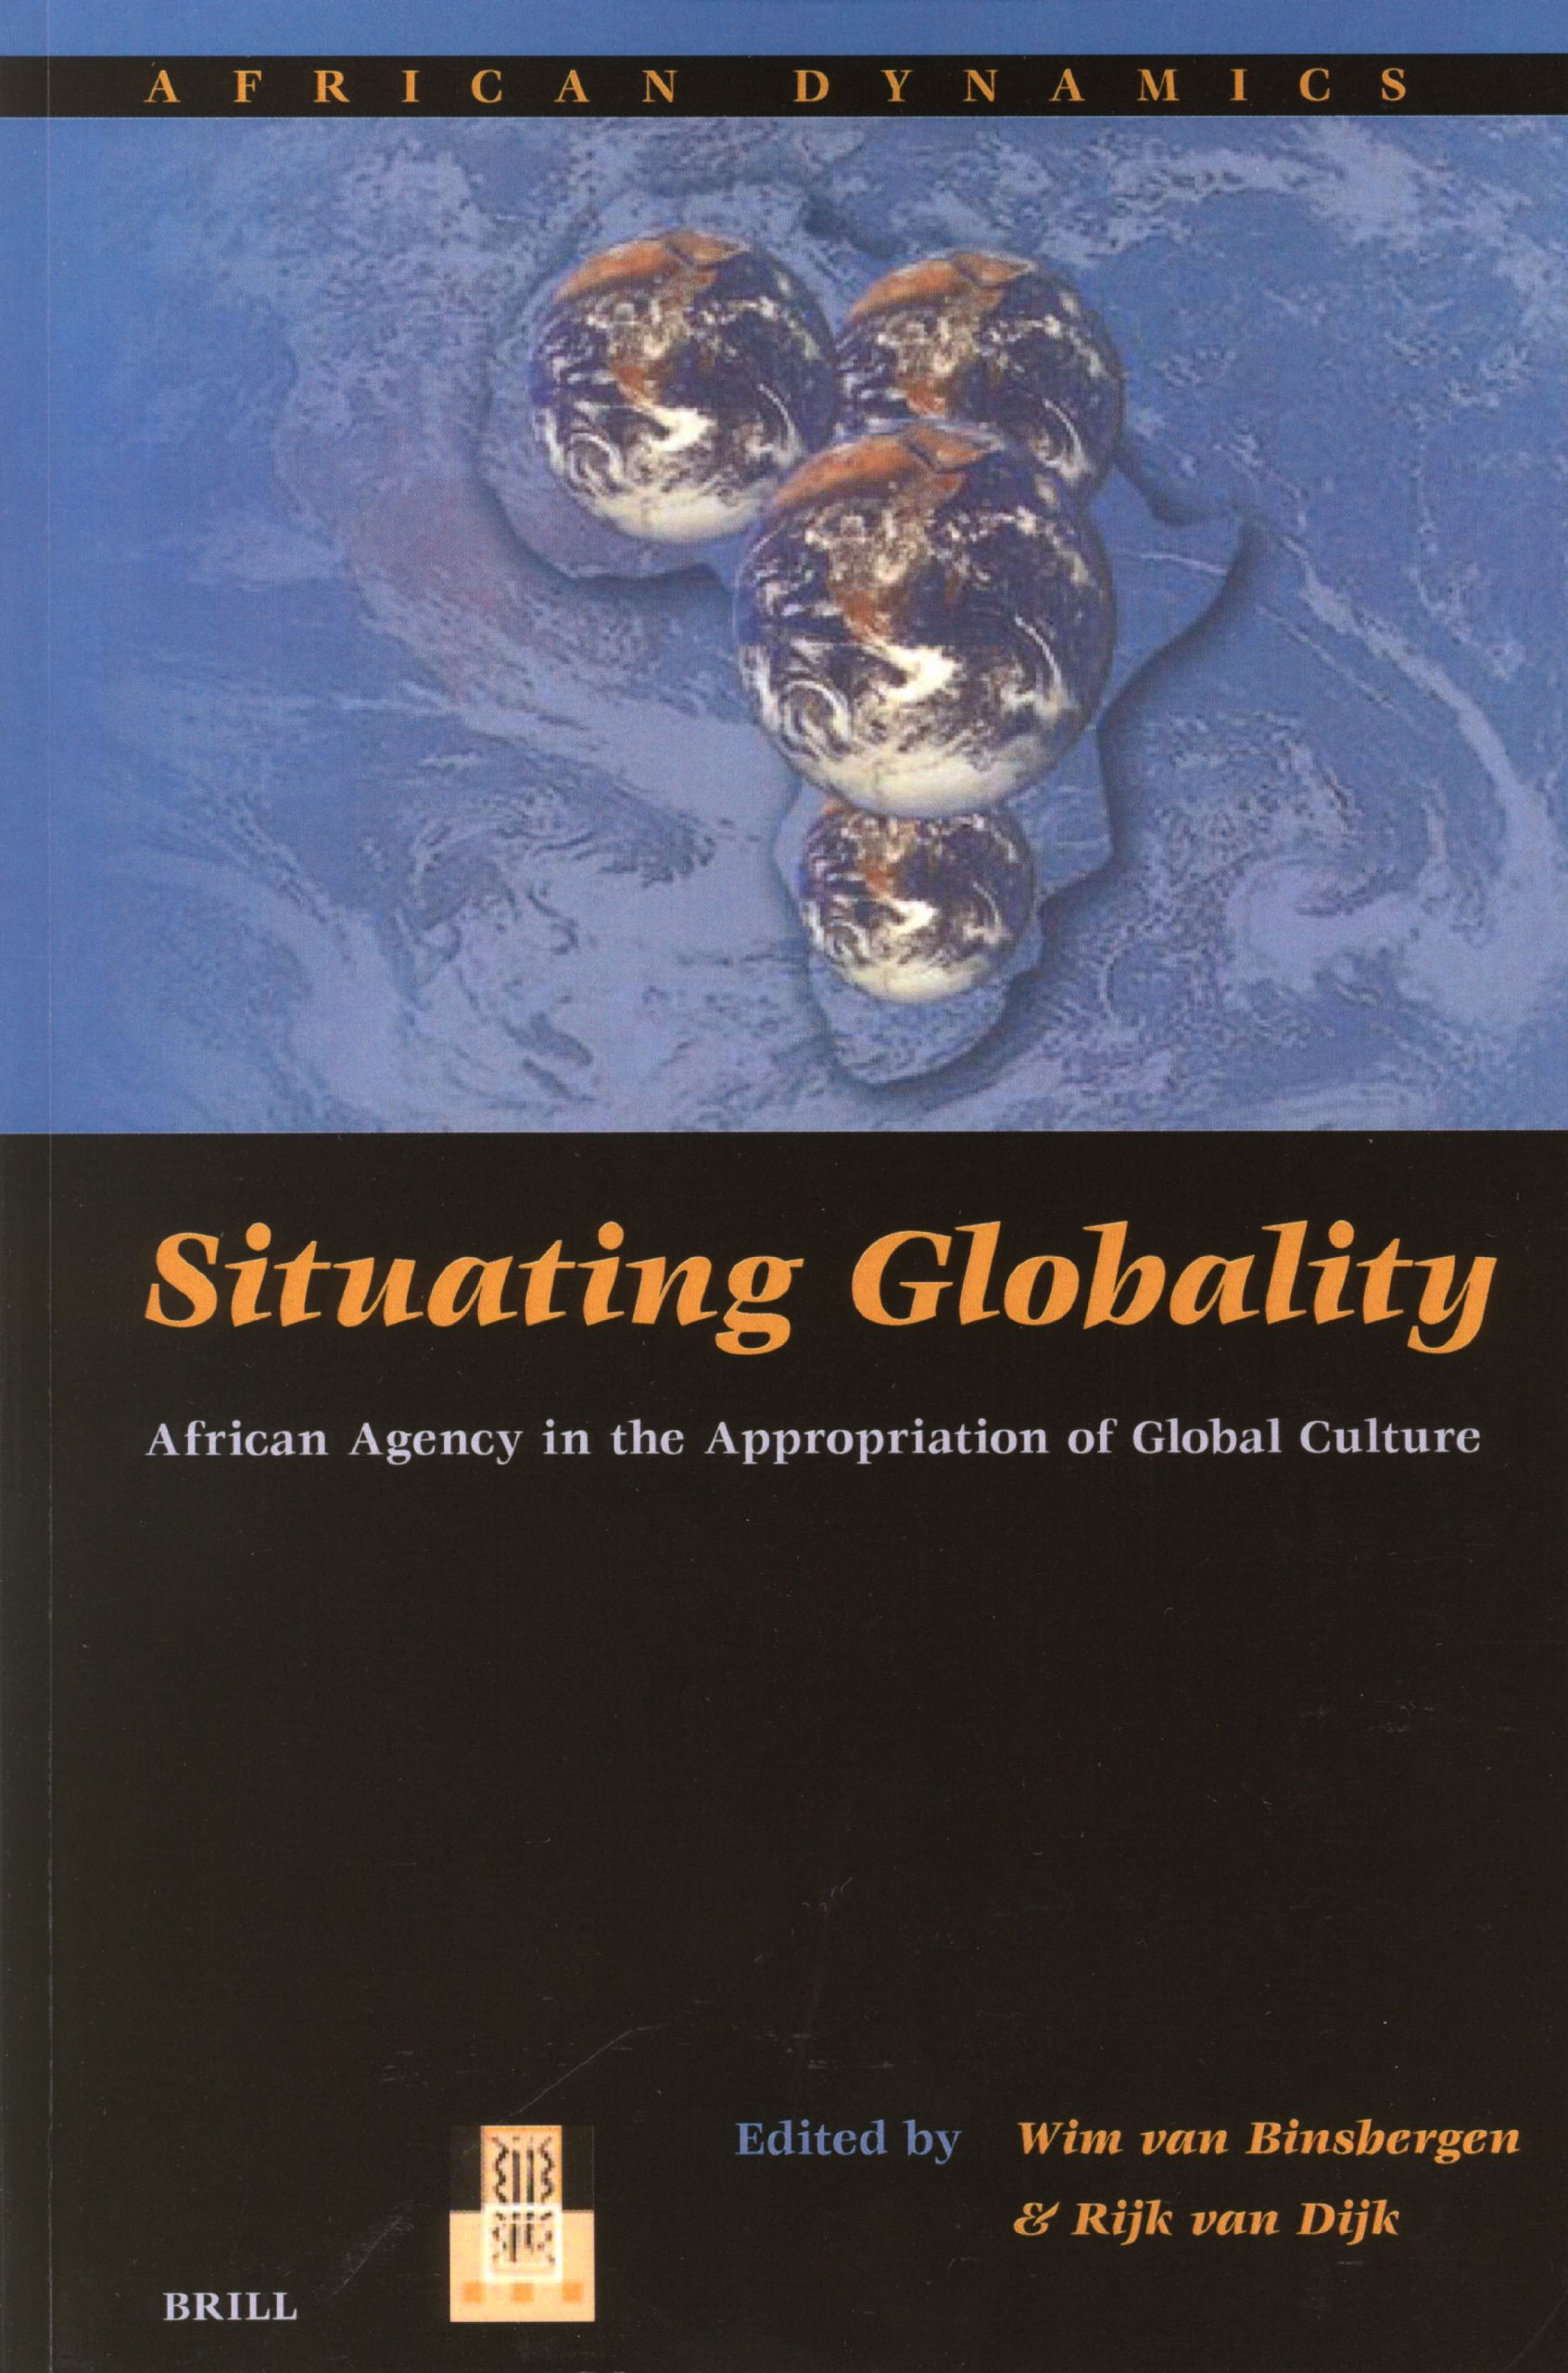 Download African Dynamics, Situating Globality: African Agency in the Appropriation of Global Culture PDF